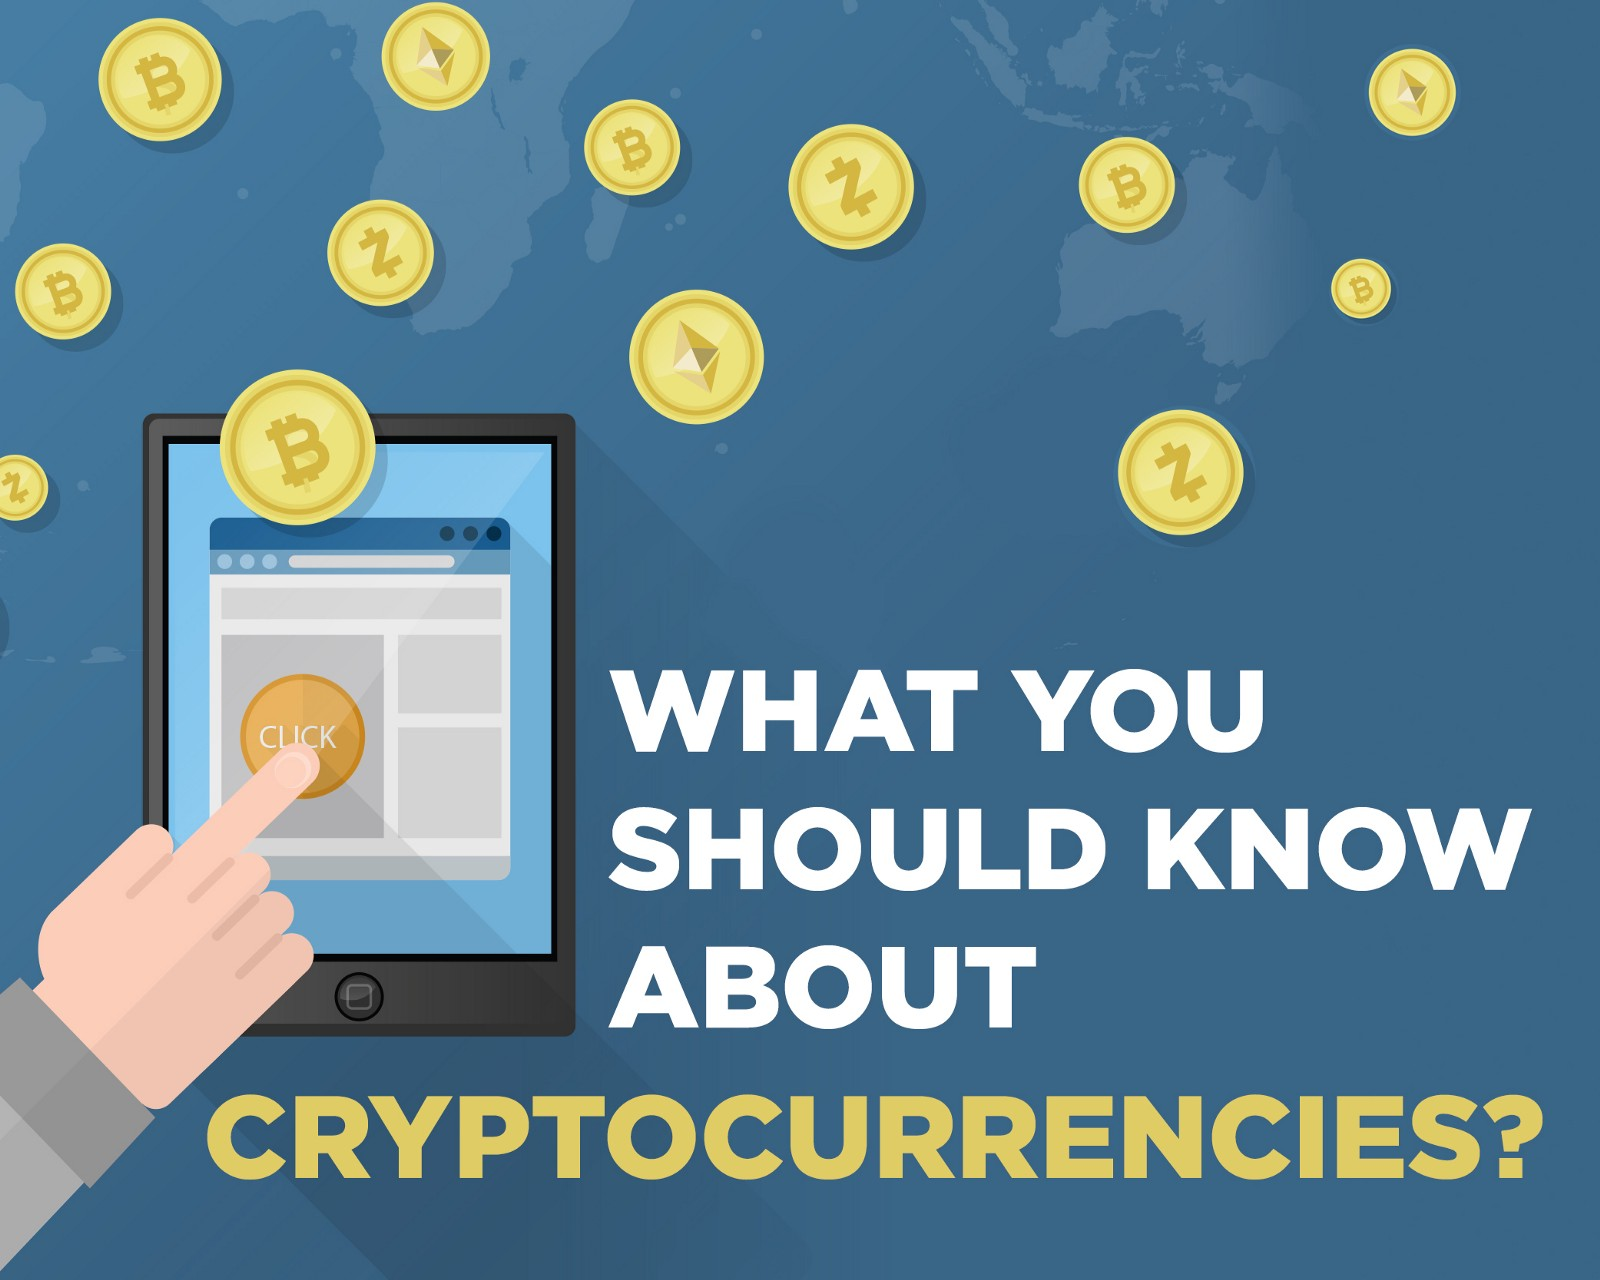 What should i know about cryptocurrency